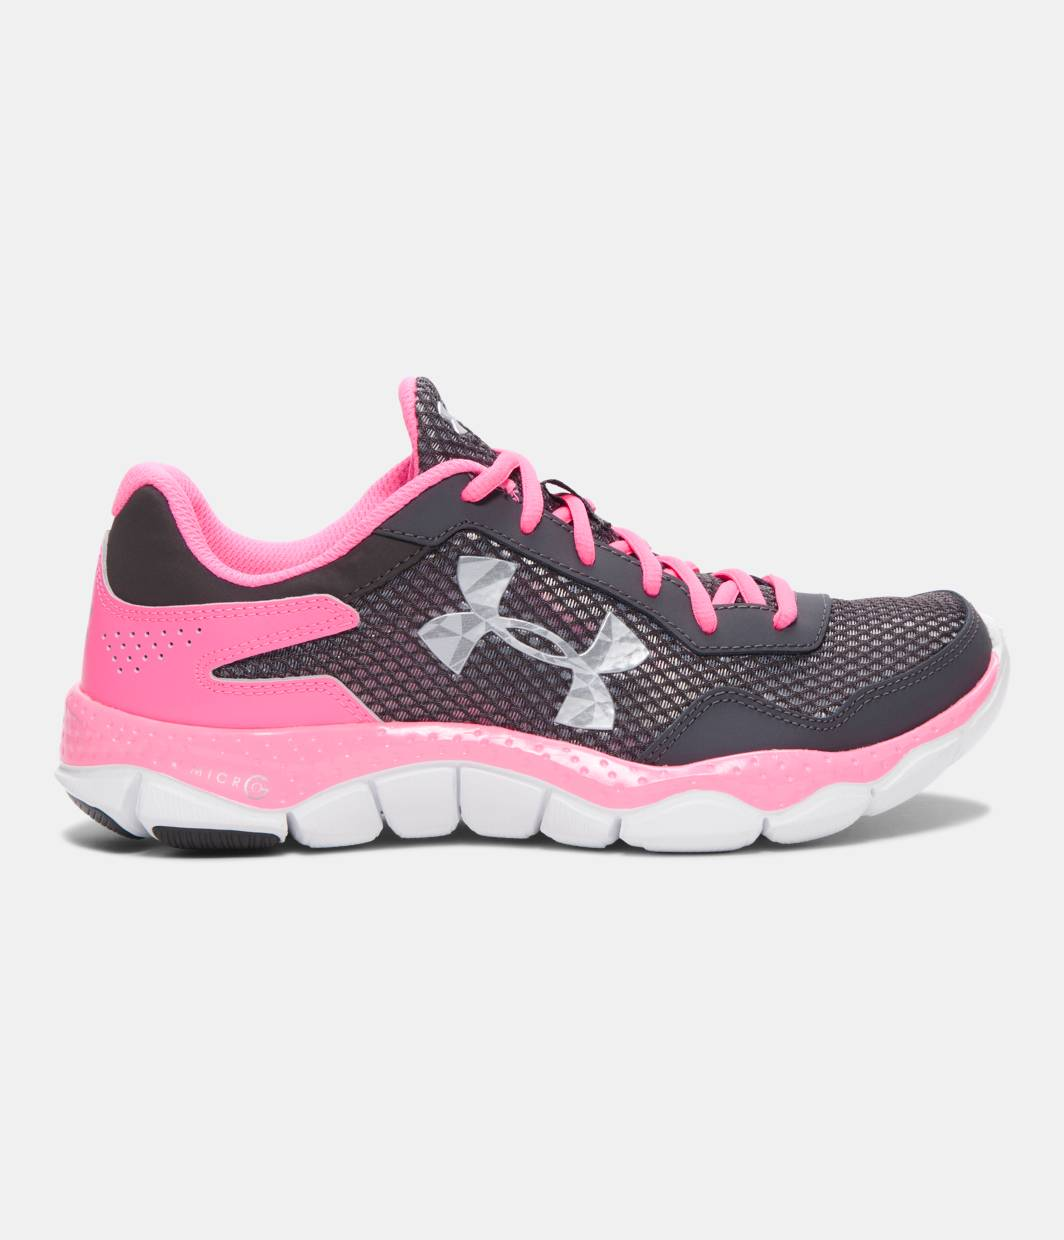 Under Armour Girls Running Shoes